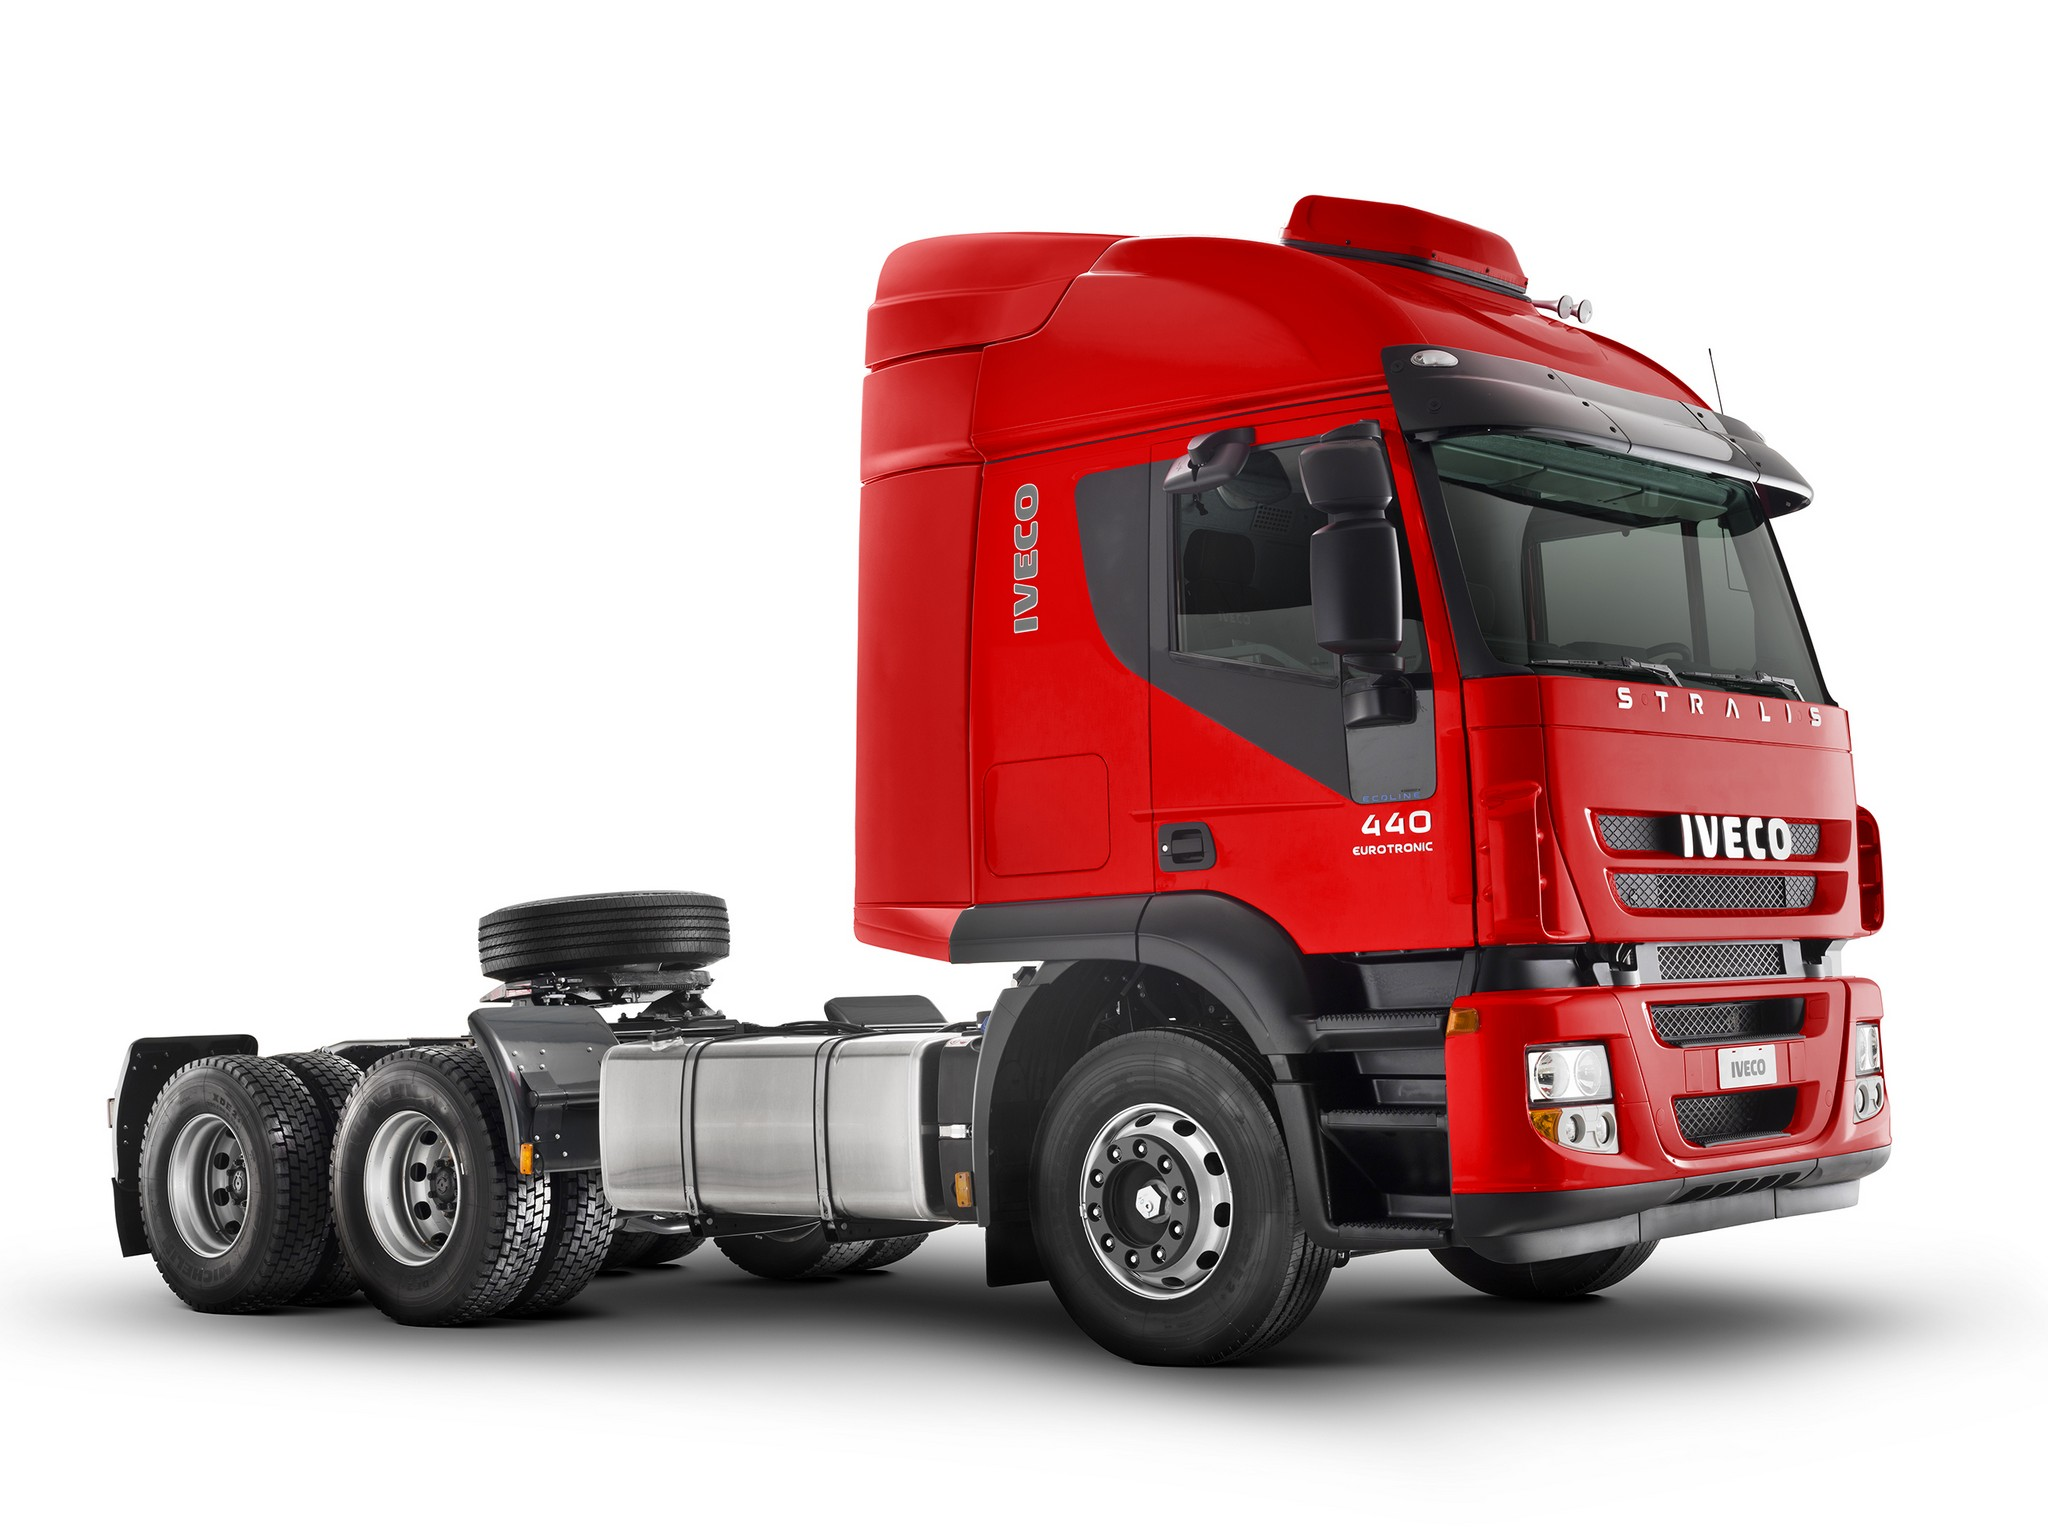 2012 Iveco Stralis 440 6x4 AT BR-spec semi tractor f wallpaper